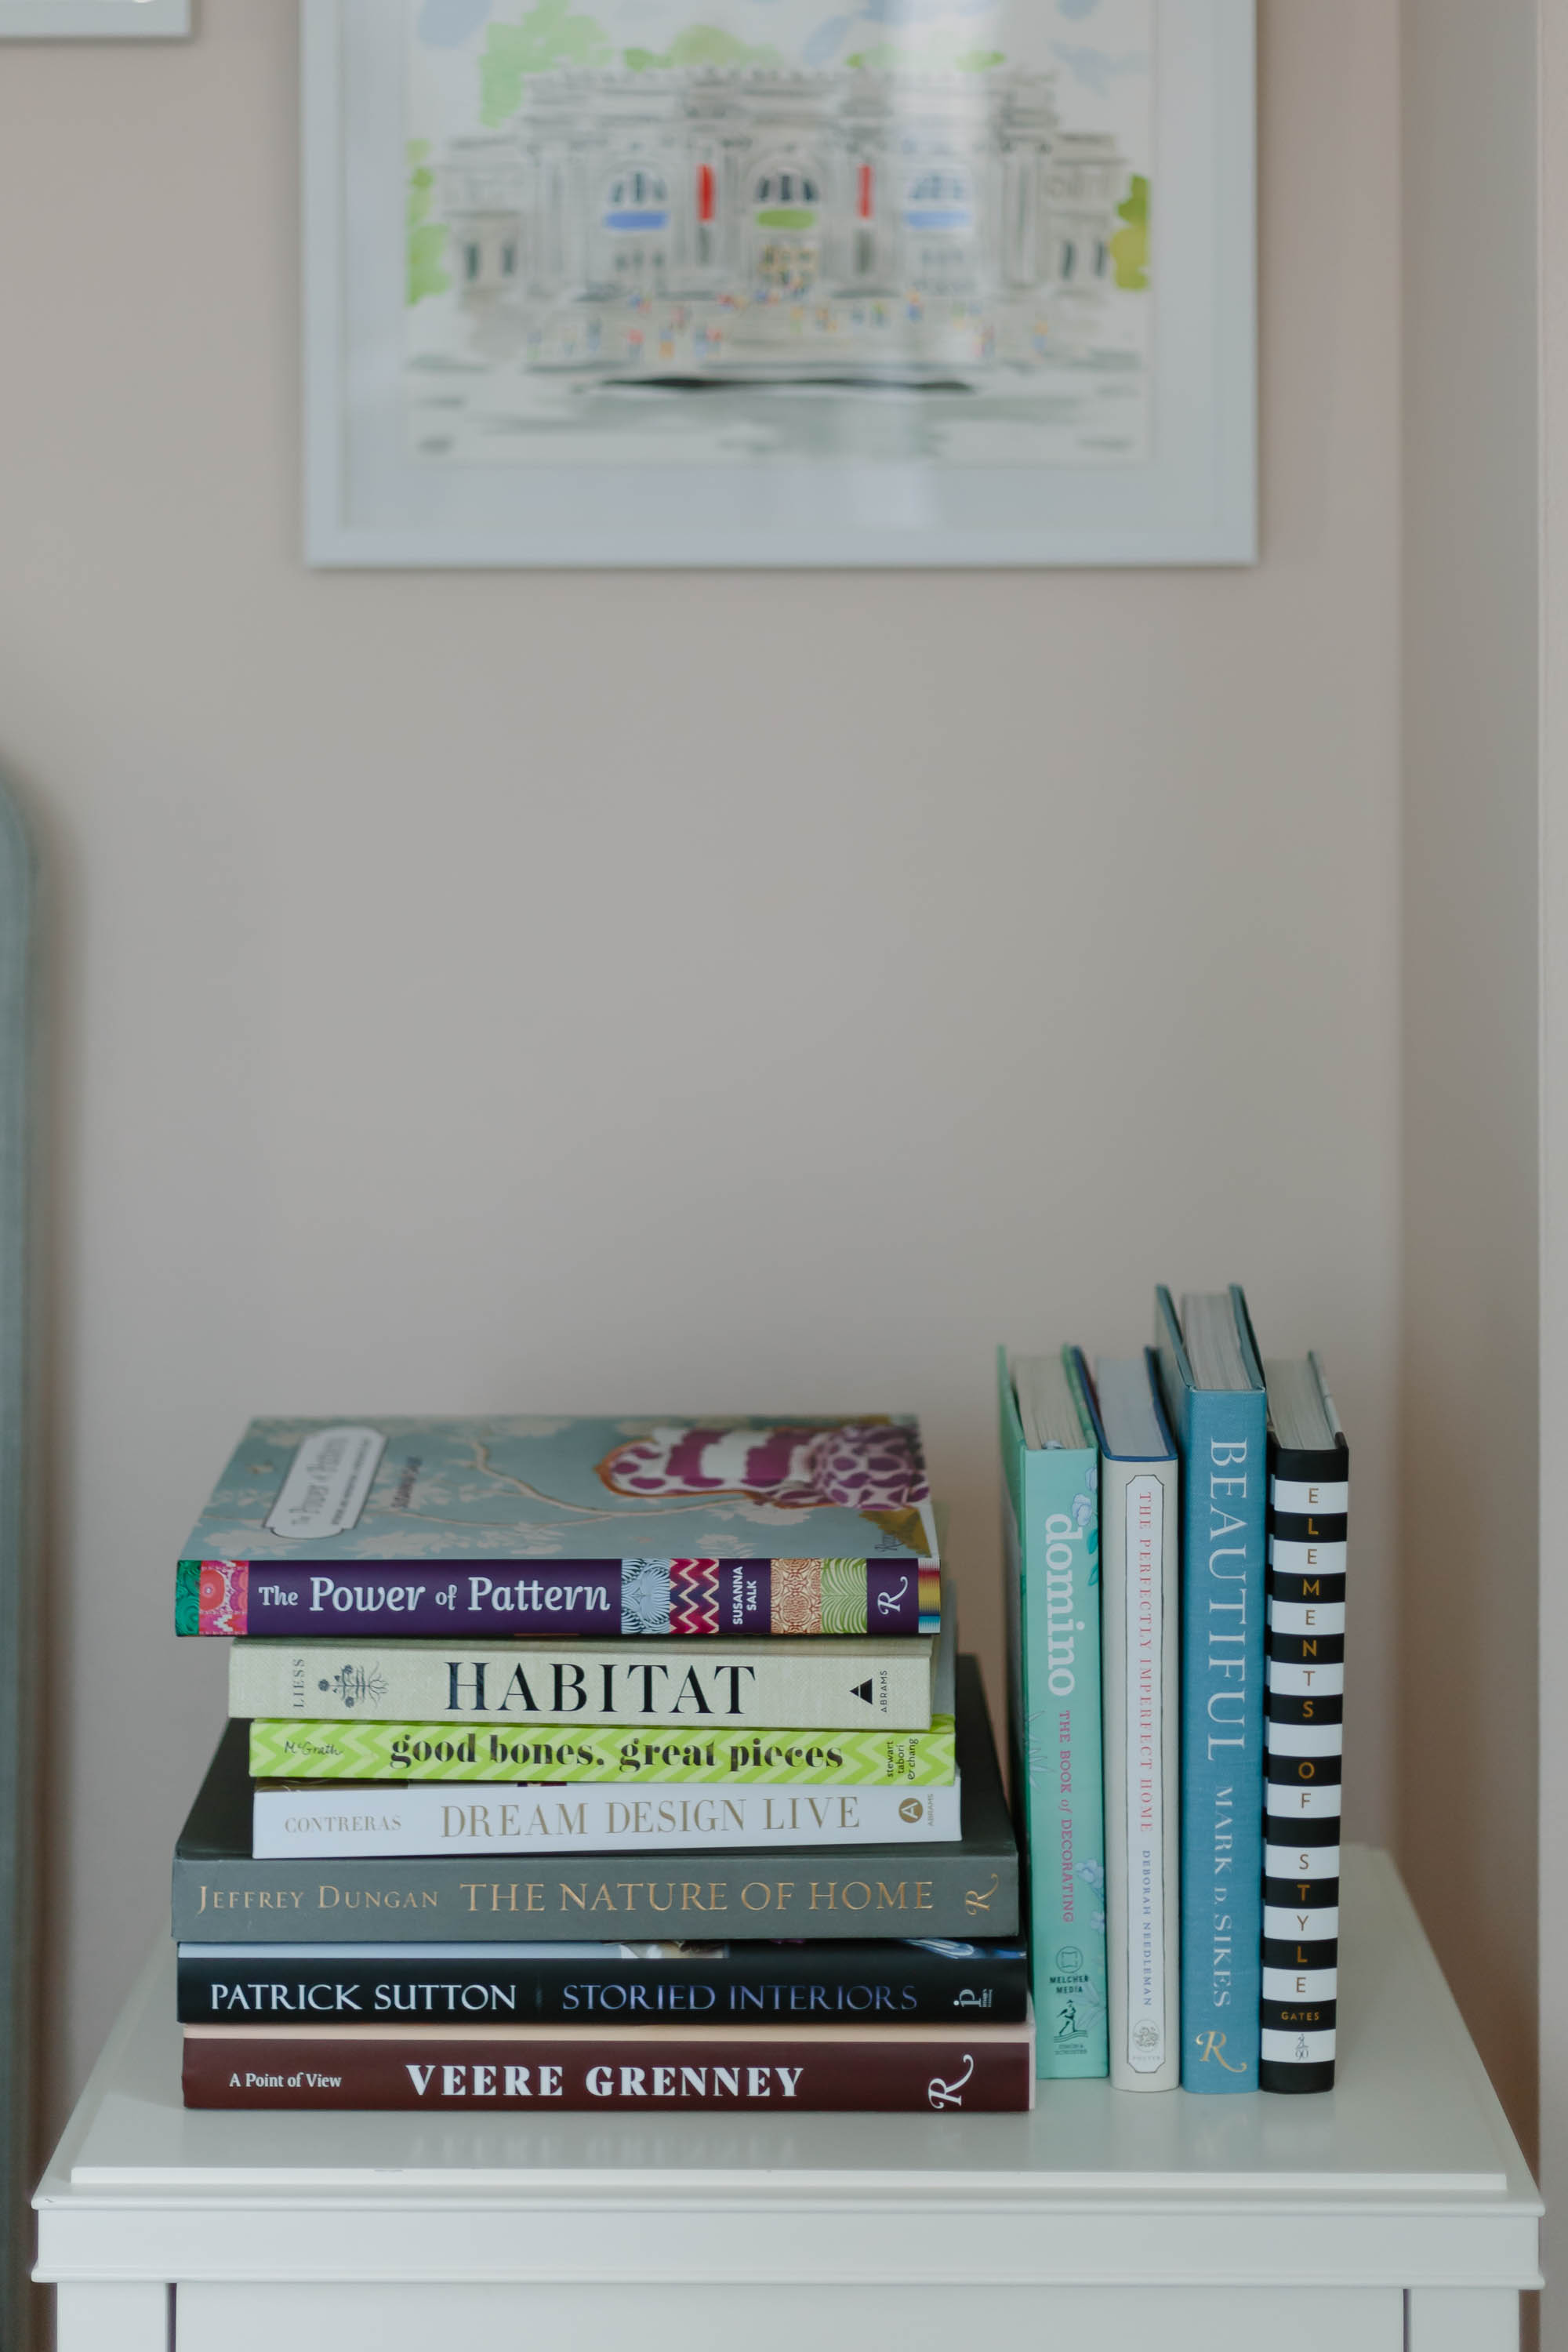 Coffee Table Books For Holiday Gifting York Avenue